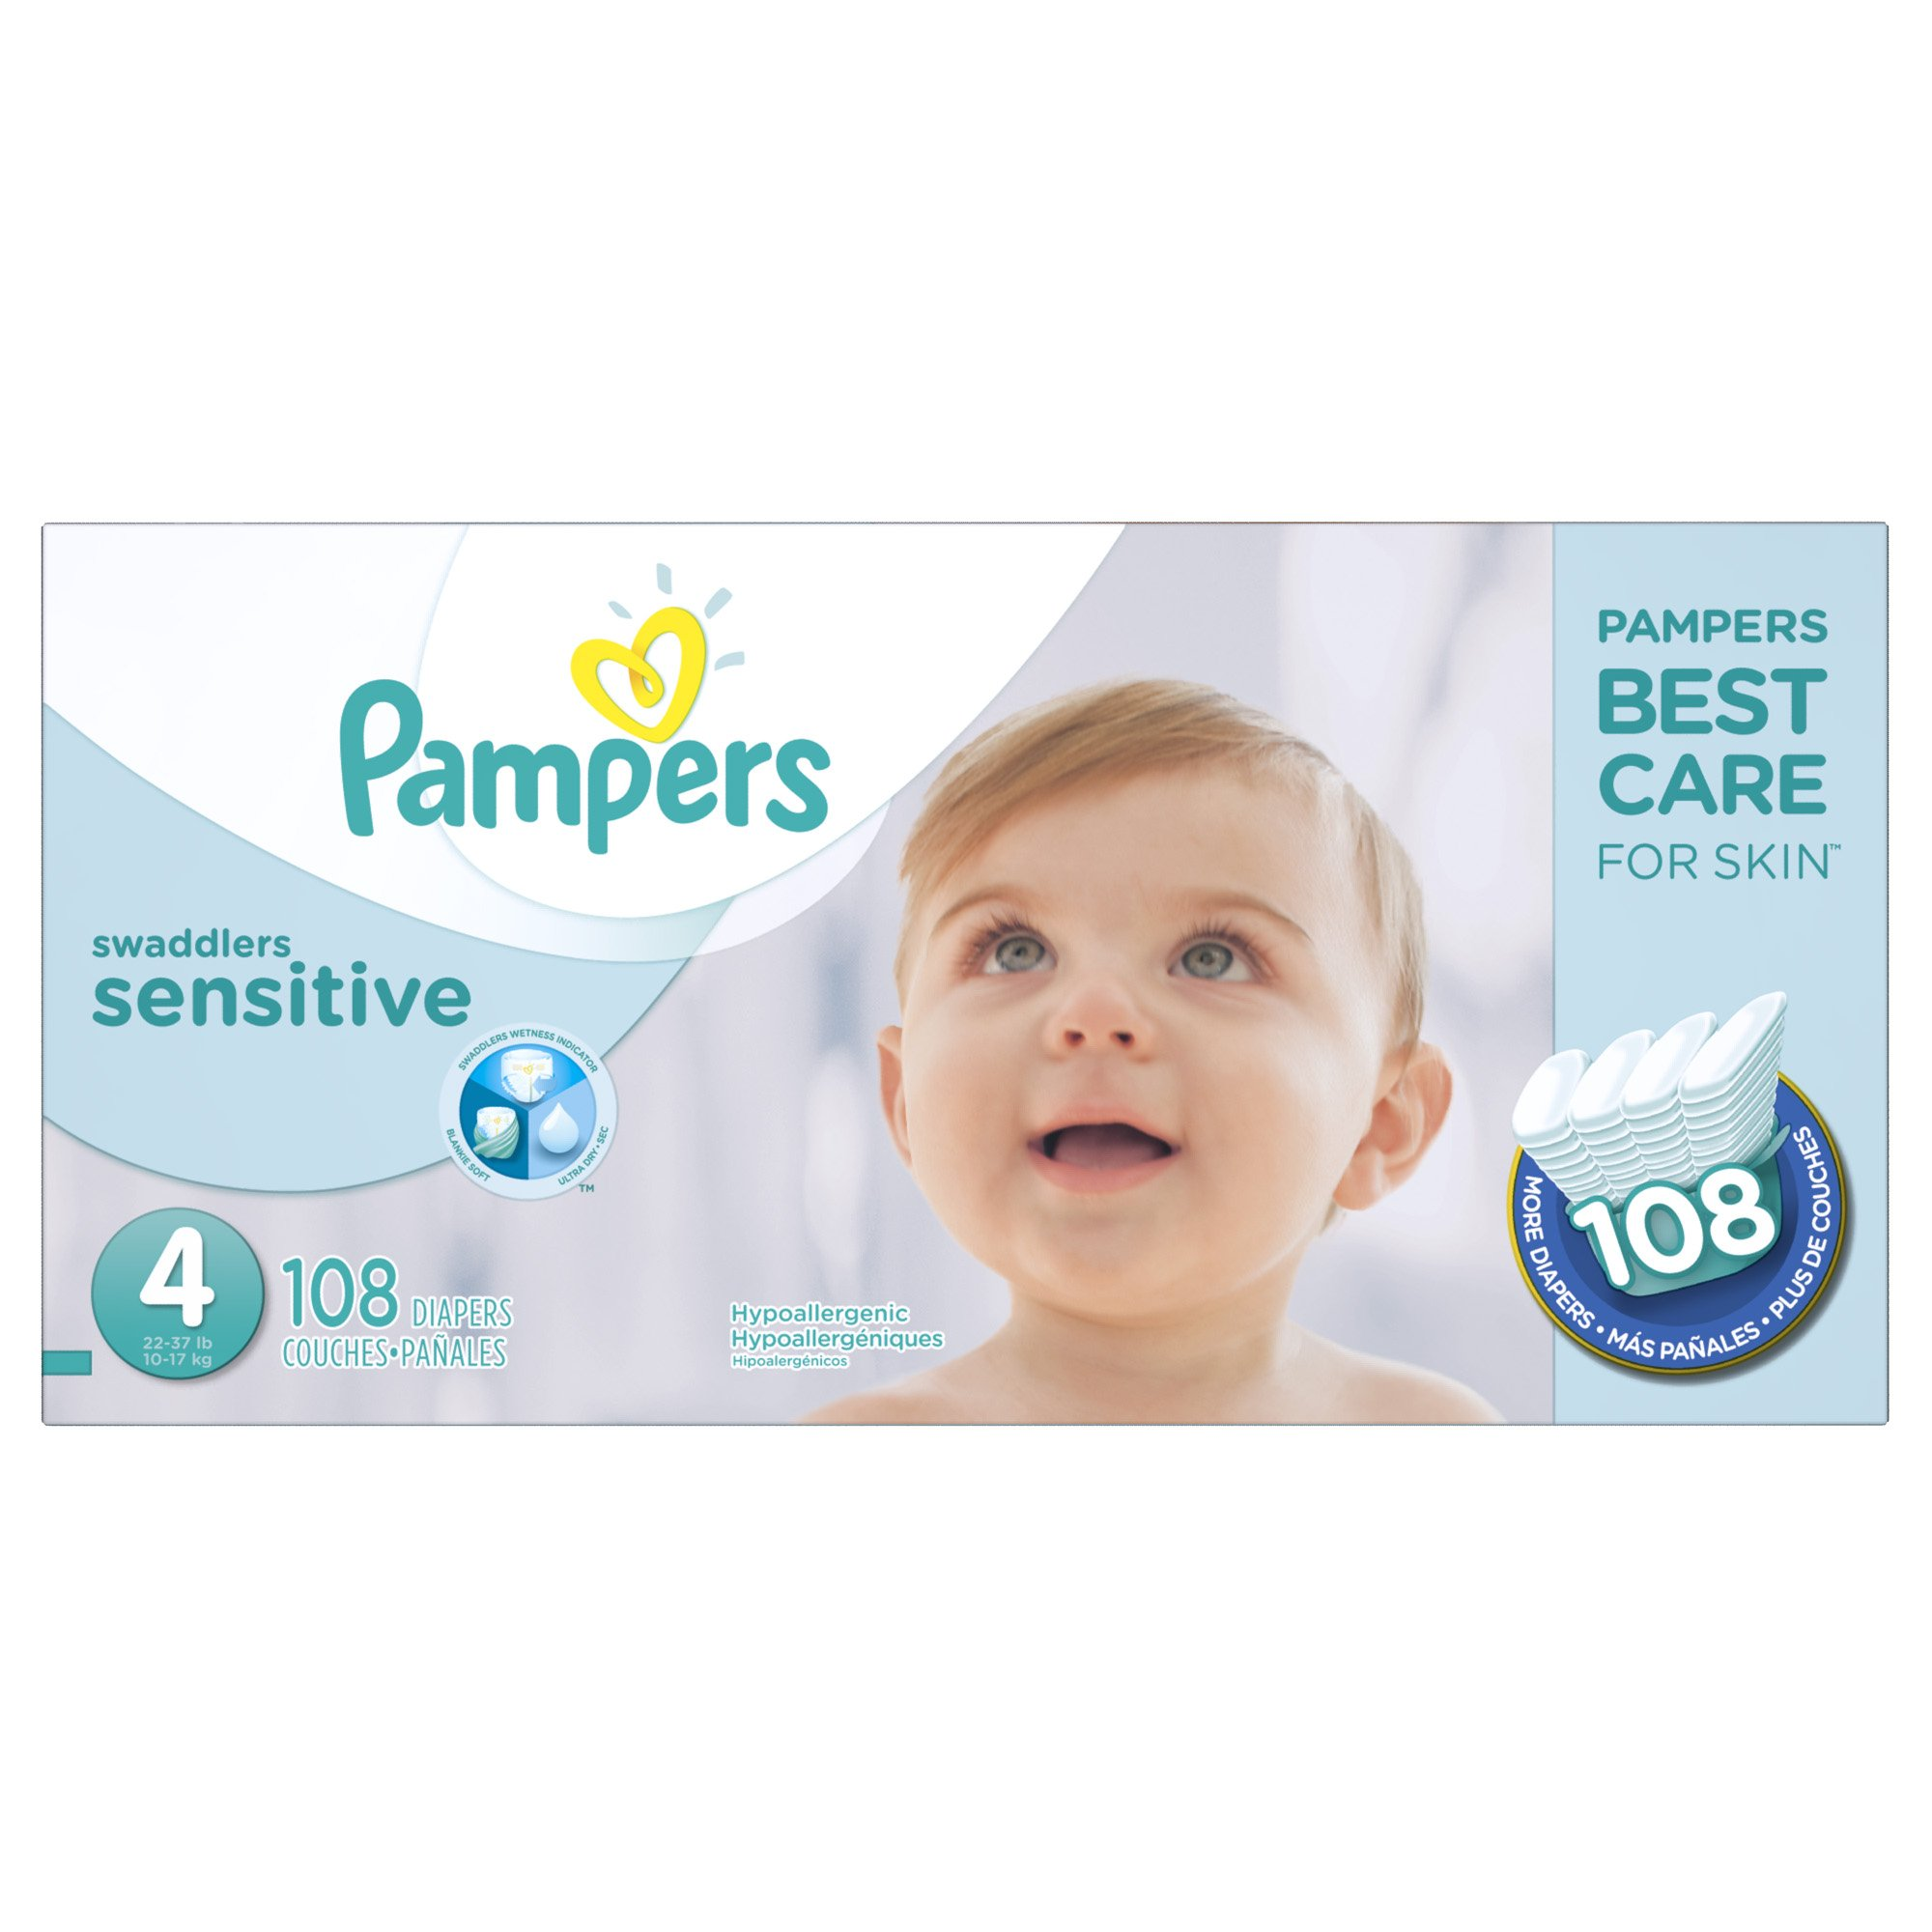 Diapers Size 4, 108 Count - Pampers Swaddlers Sensitive Disposable Baby Diapers, Super Economy by Pampers